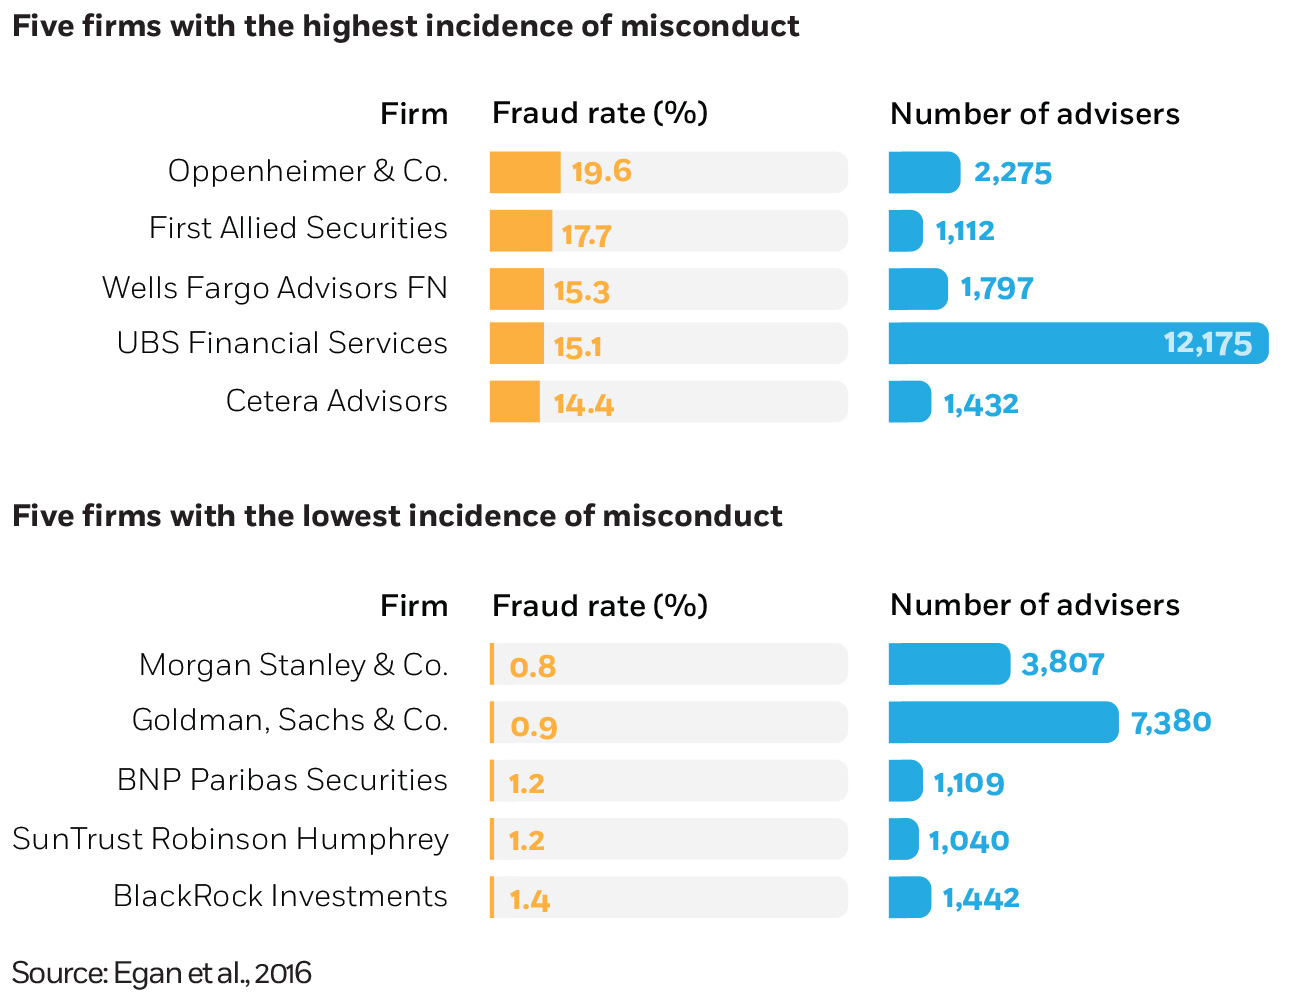 Chart showing five firms with highest and lowest incidence of misconduct